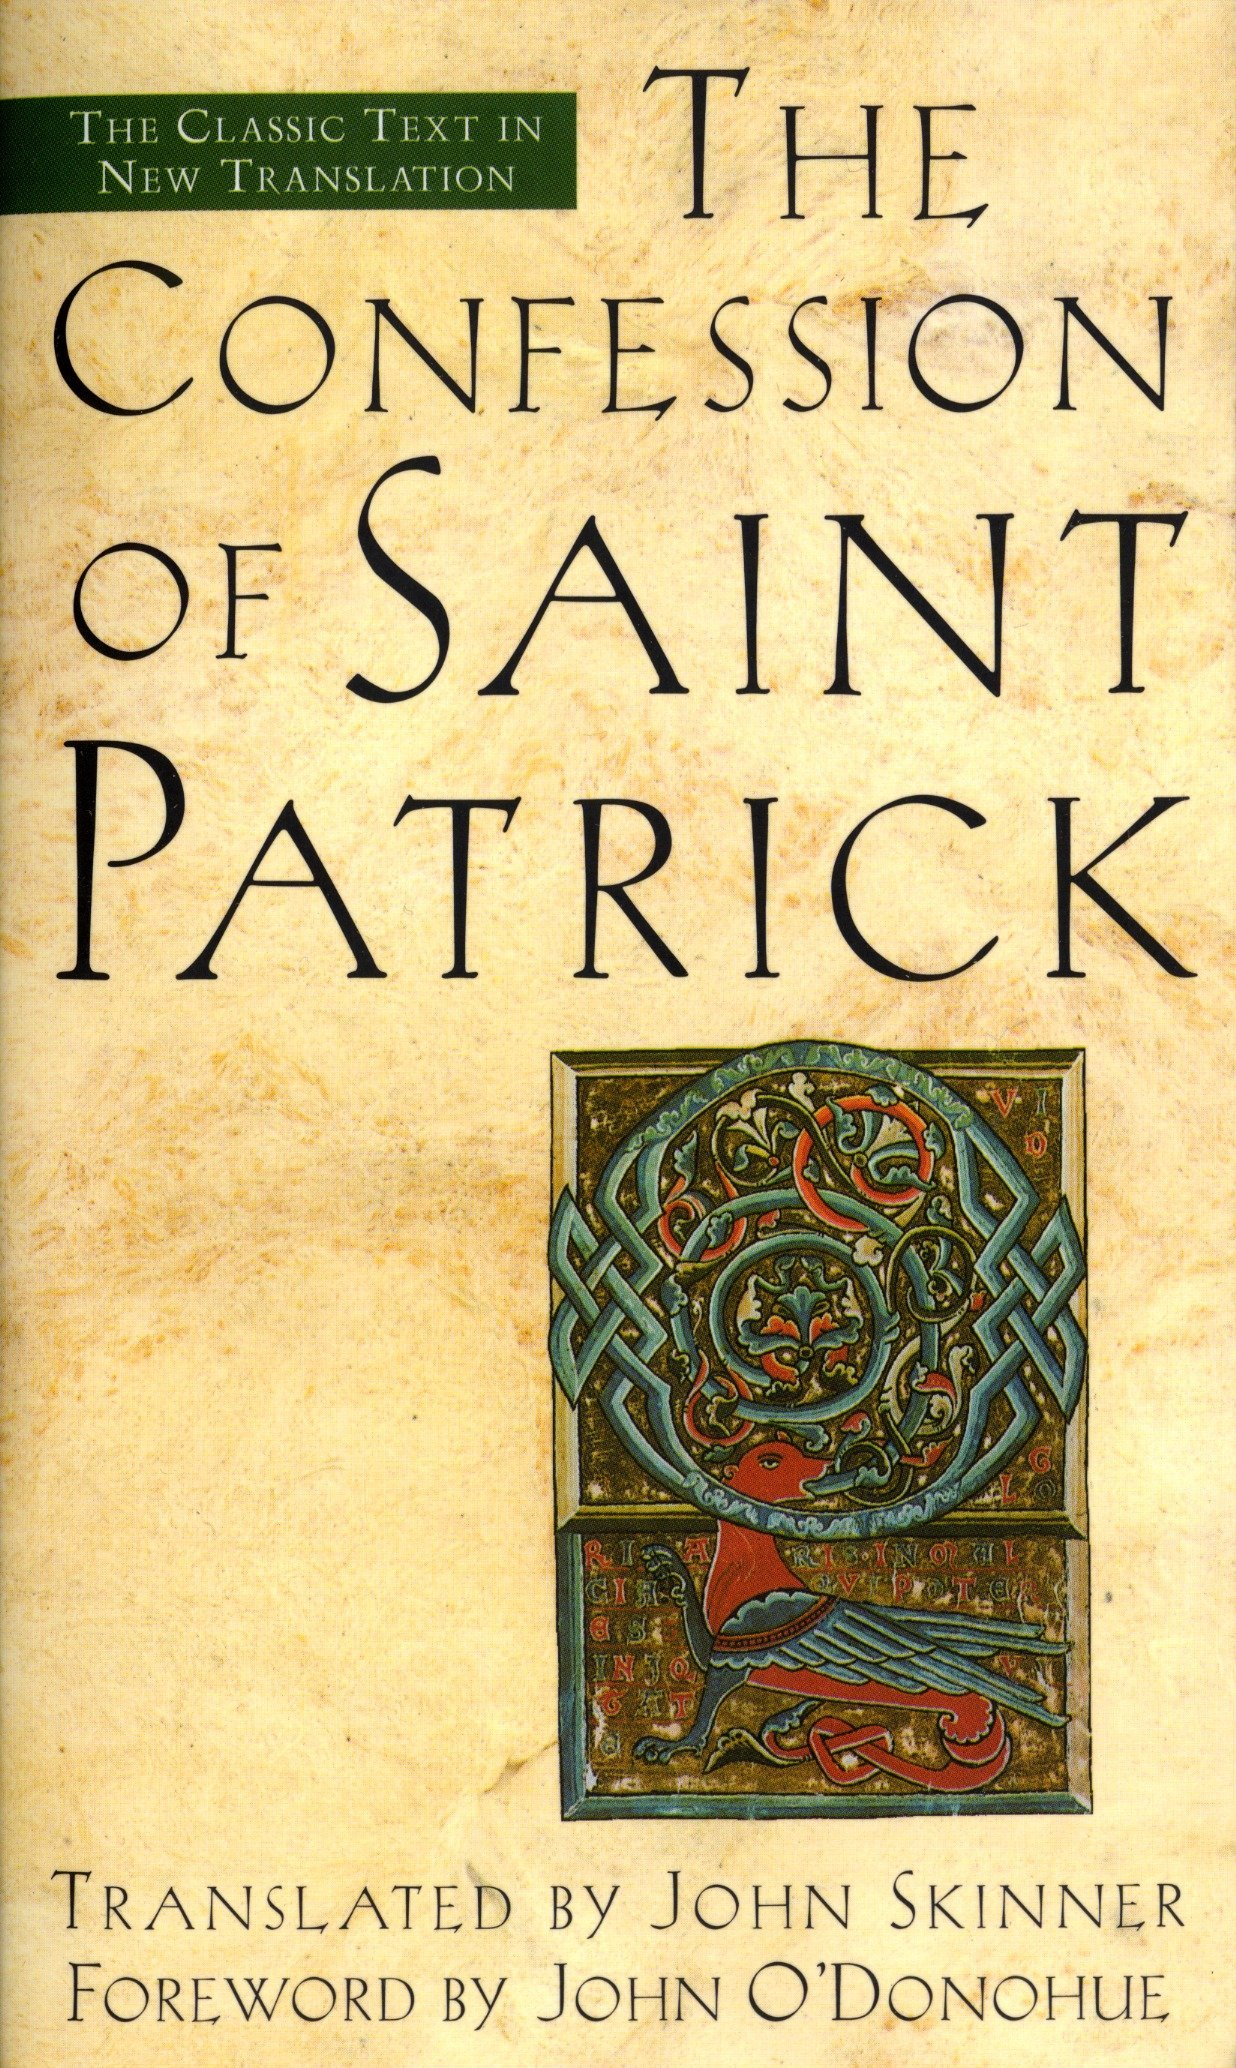 Image result for The Confessions of Saint Patrick by John Skinner